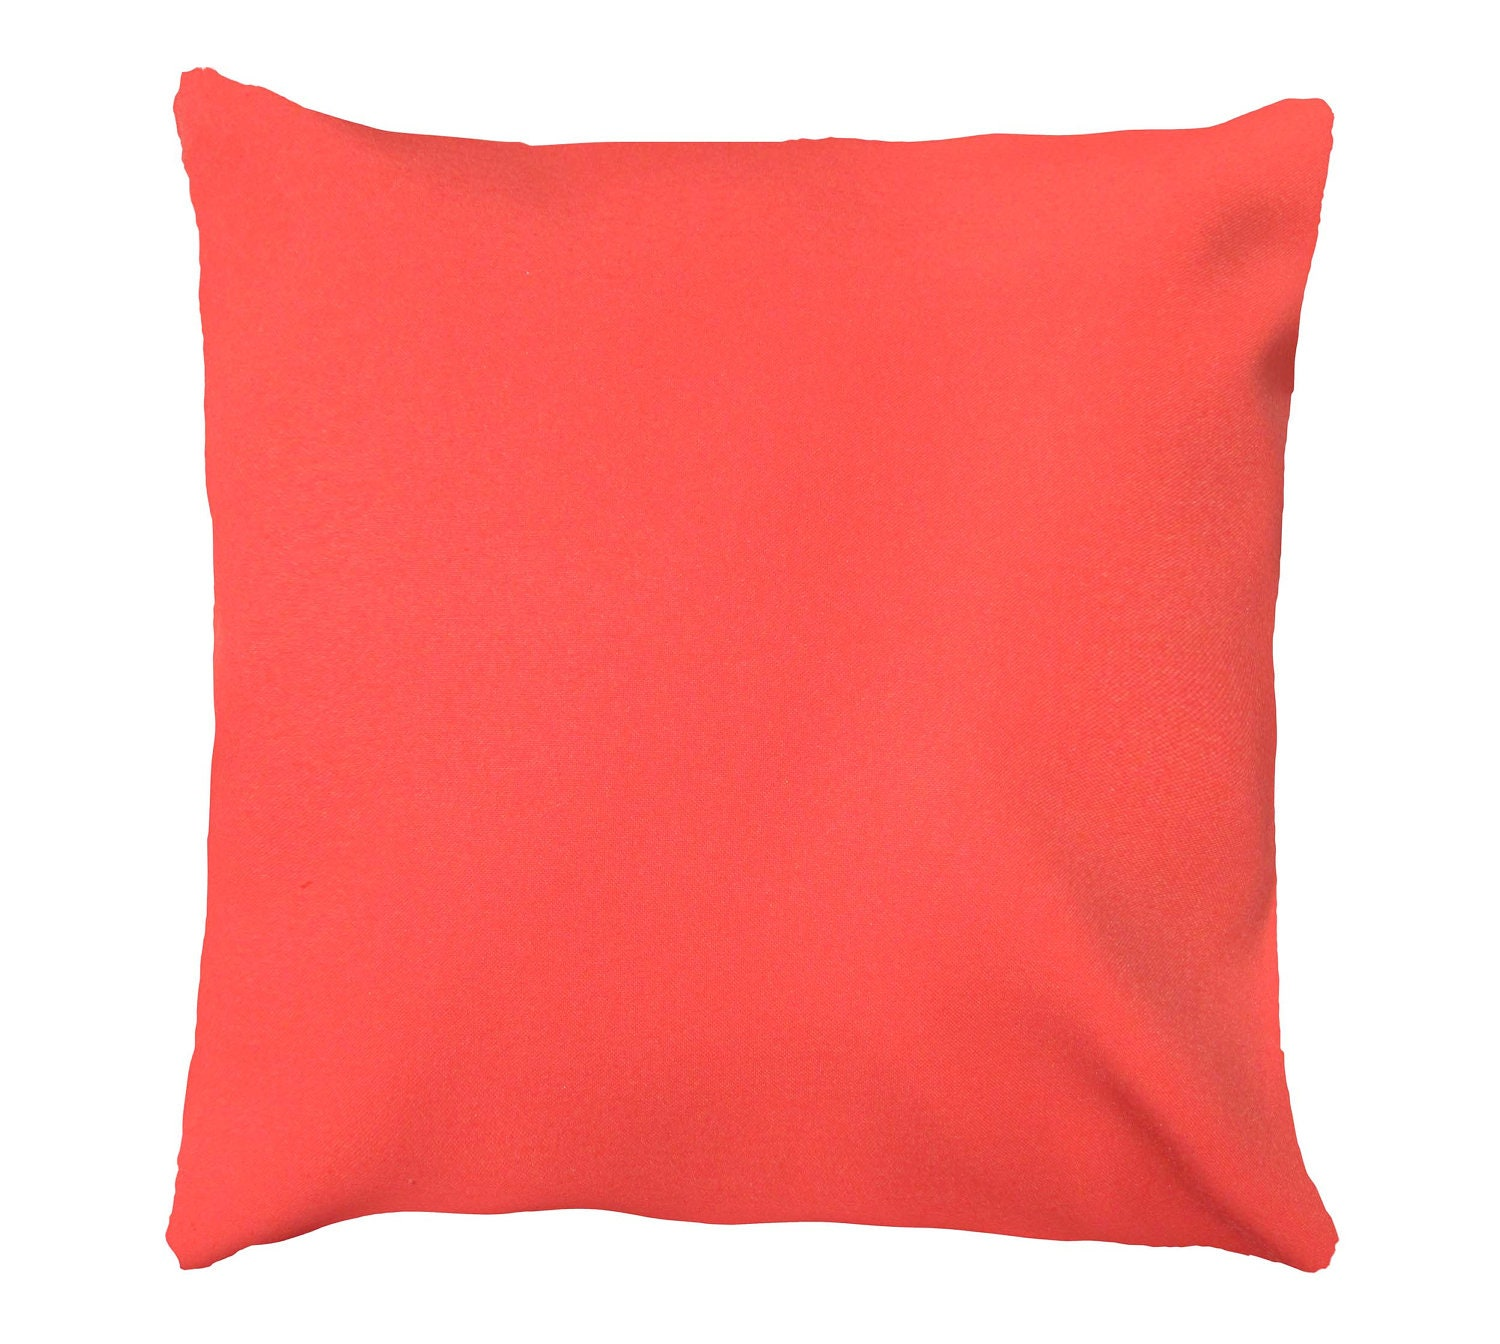 Throw Pillows Coral : Coral Throw Pillow Cover. Pillow Cover Coral Solid Pillow